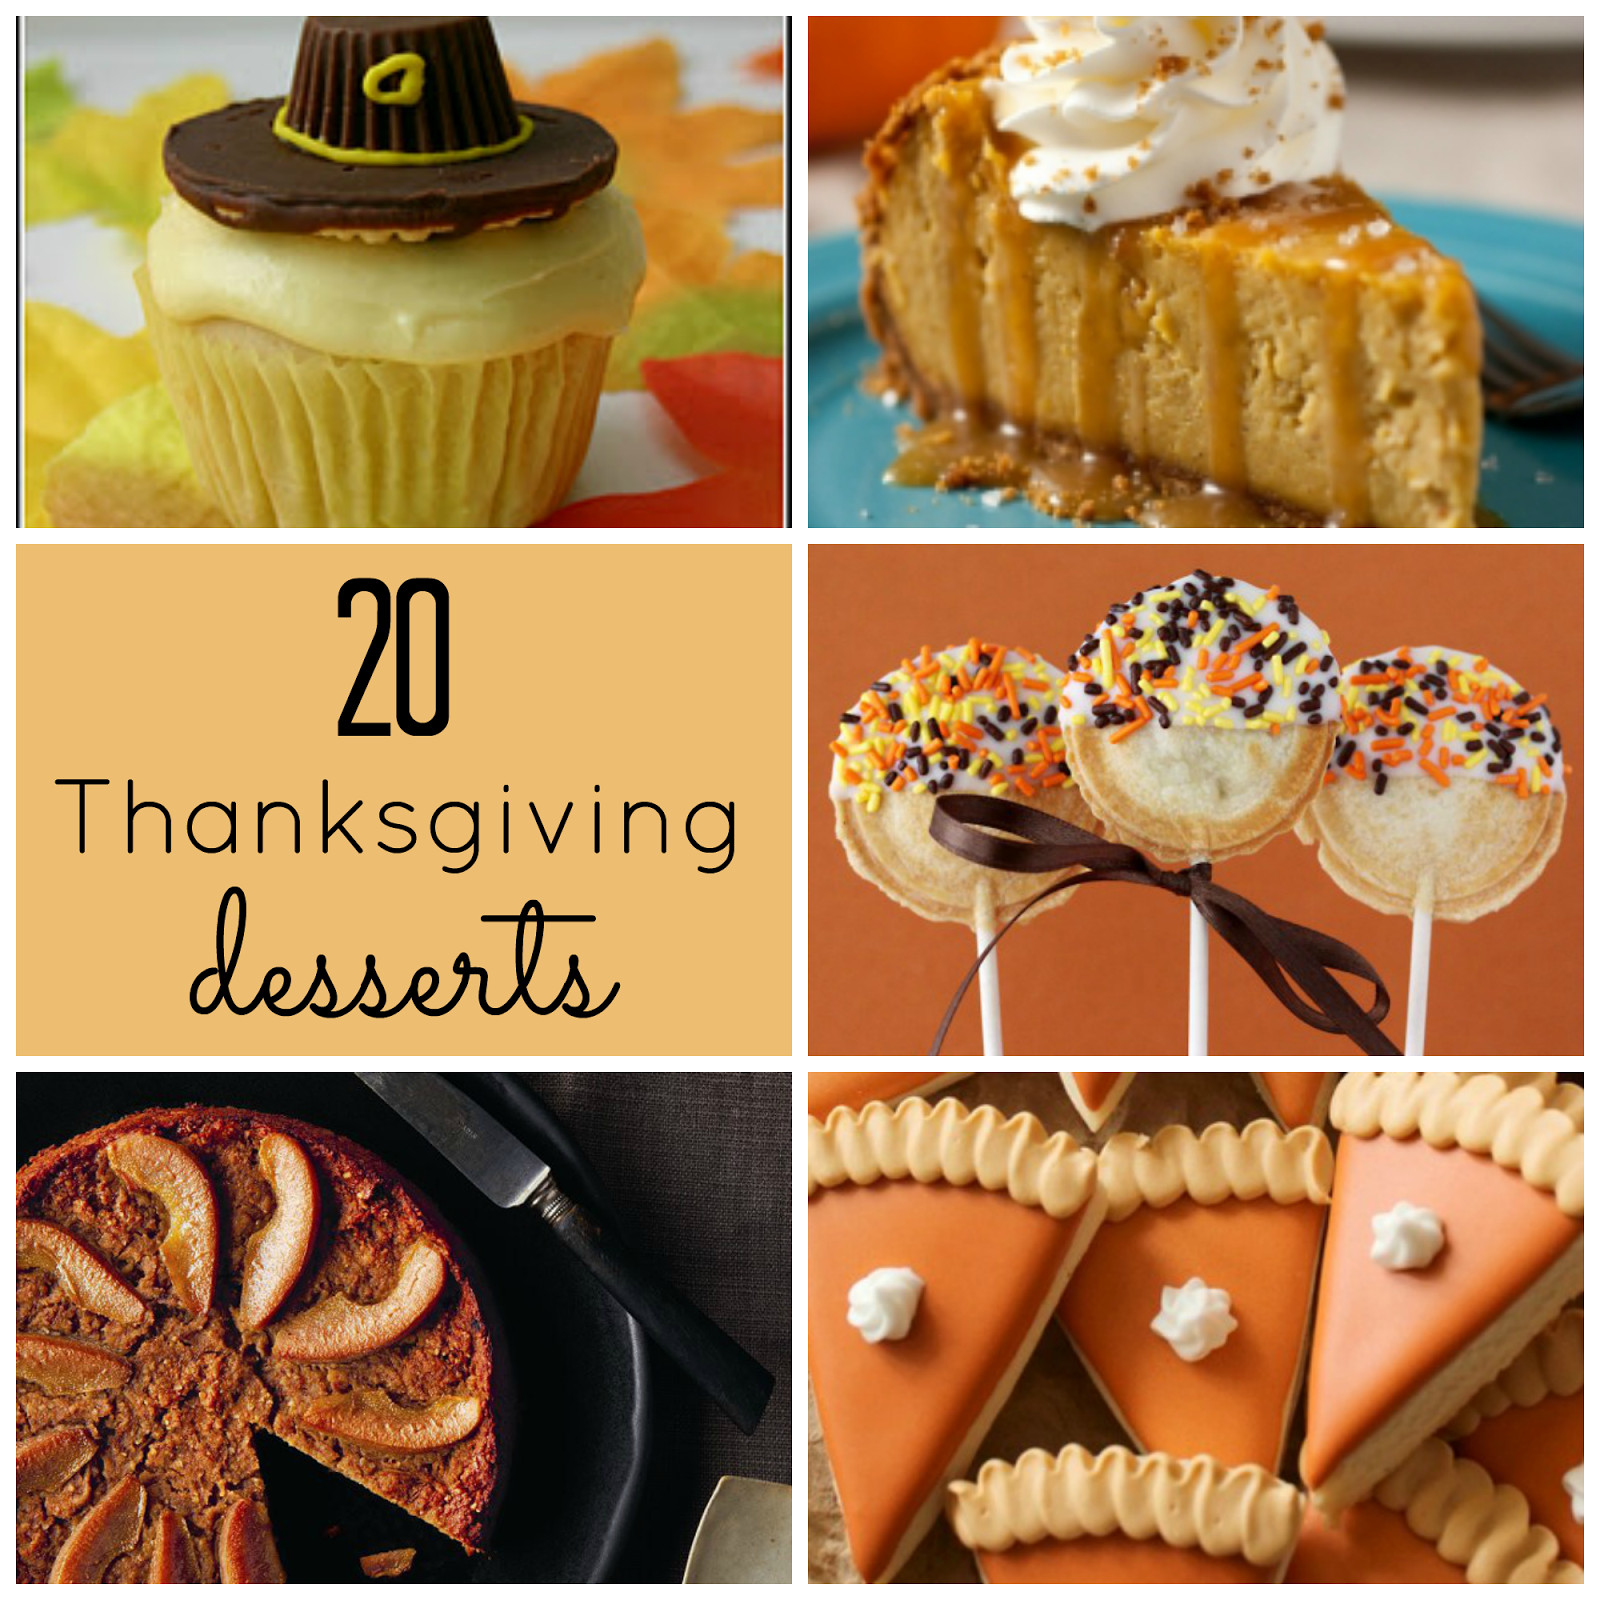 Ideas For Thanksgiving Desserts  The Upstairs Crafter Good Ideas Thanksgiving Desserts